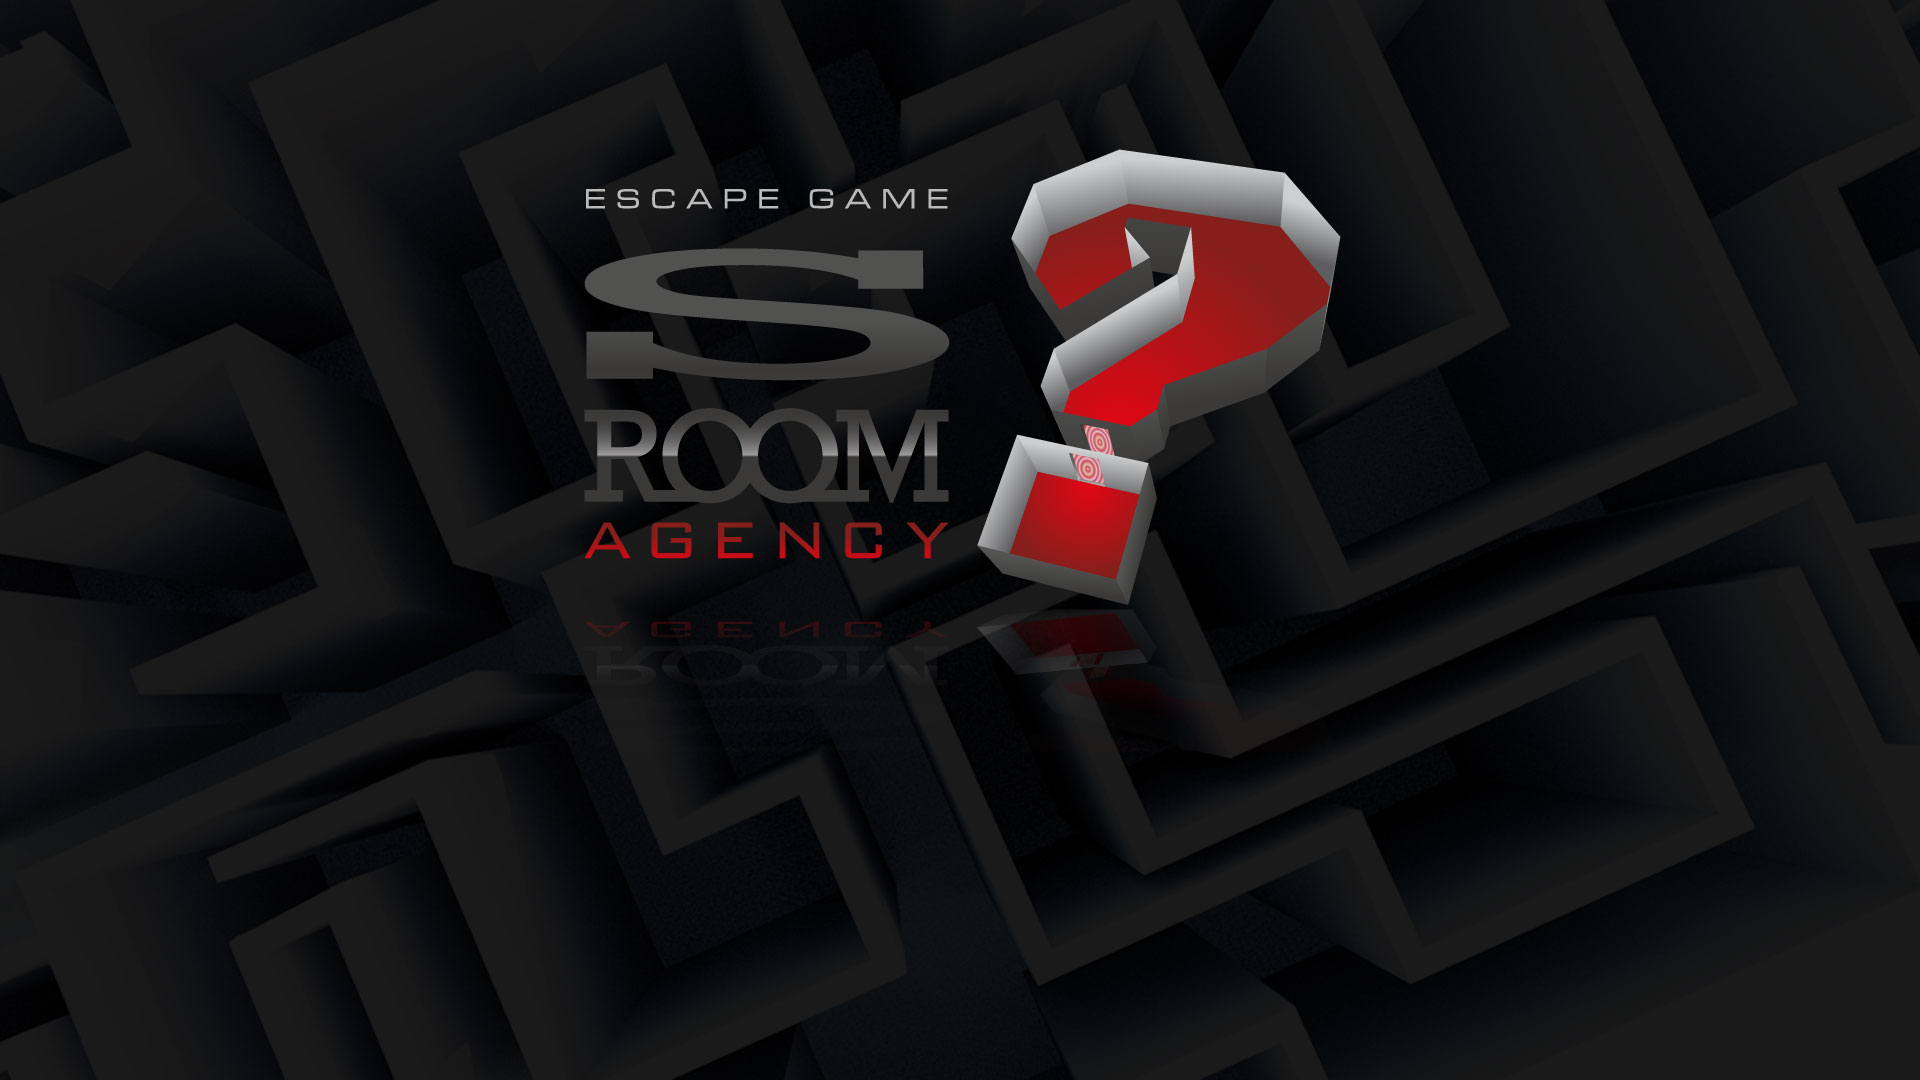 Escape Game S Room Agency Montauban - Accueil Logo